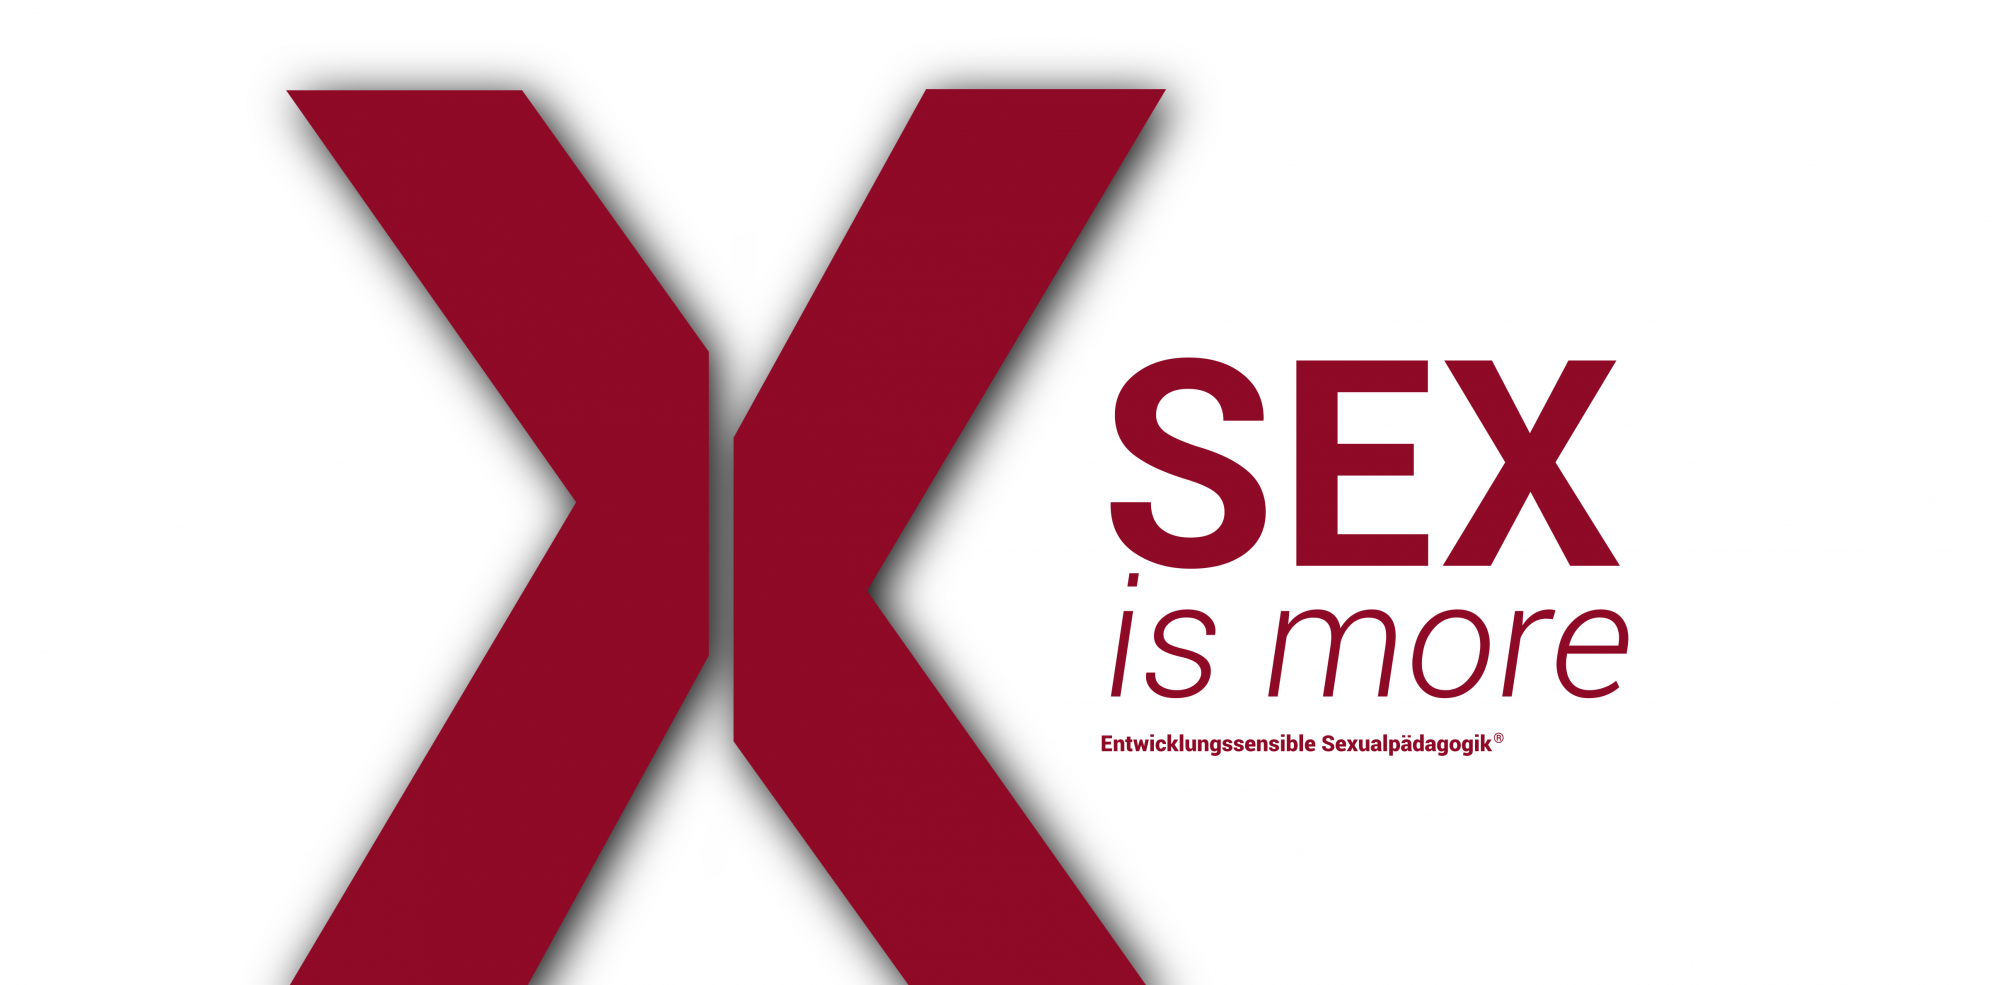 SEX IS MORE